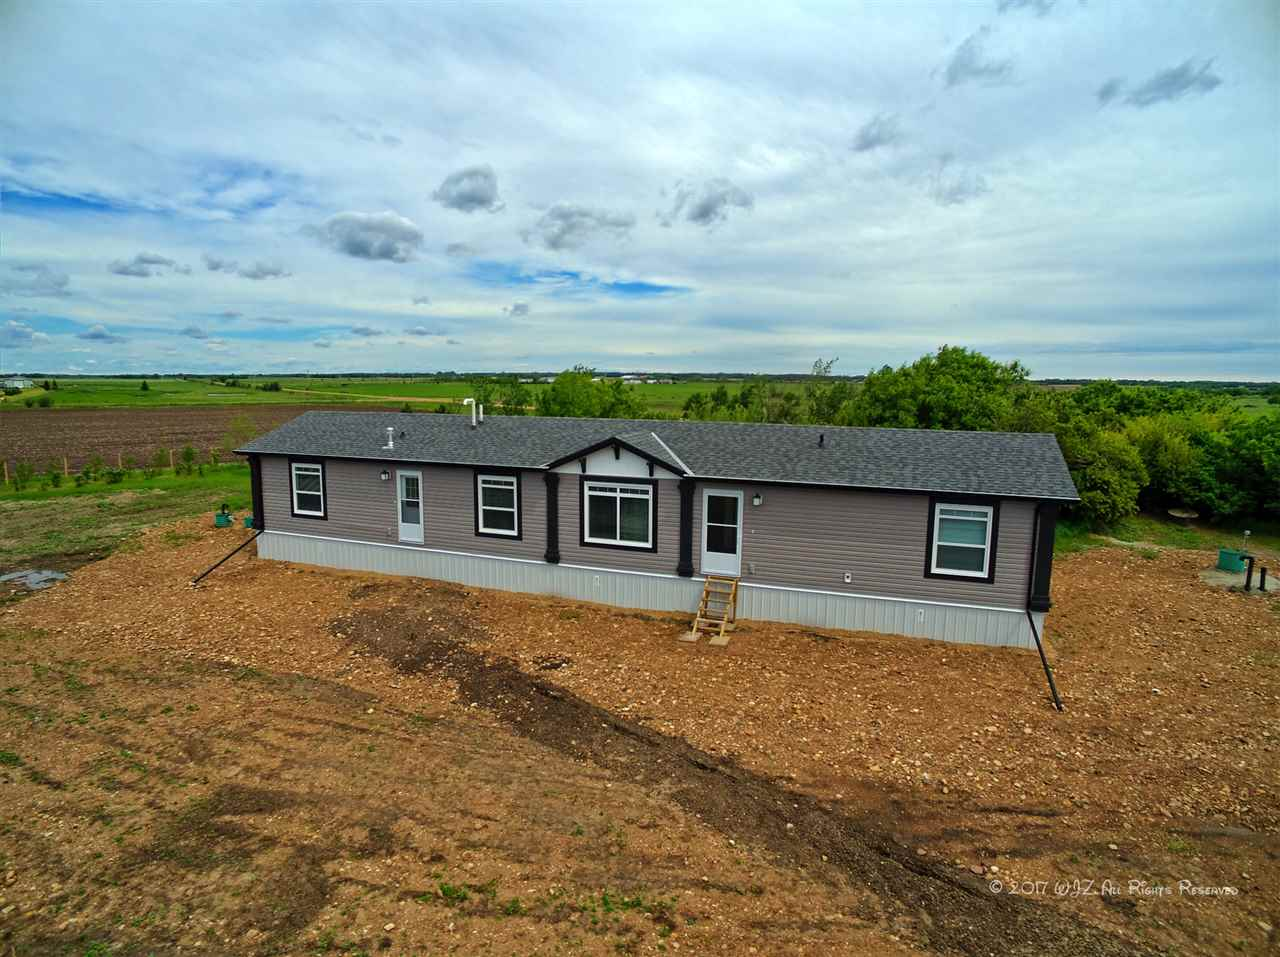 Located minutes east of Chipman and less then 2 miles from Hiway 15 is this 80 acre parcel of land with a 2015 Bradford model built by Triple M Housing modular home offering 1520 square feet of living space.  The home features a gorgeous country style  kitchen with an abundance of cupboards, counters space, huge island, spacious eating area and a  huge living room area. The master bedroom with a 5 piece en suite is located at one end of the home.  The three bedrooms and a 4 piece bathroom are located on the opposite end.  Laminate flooring through out the home other than the master bedroom having carpet compliments the property. The 2800 gallon cistern and the septic system( tank and open discharge) are newly installed.